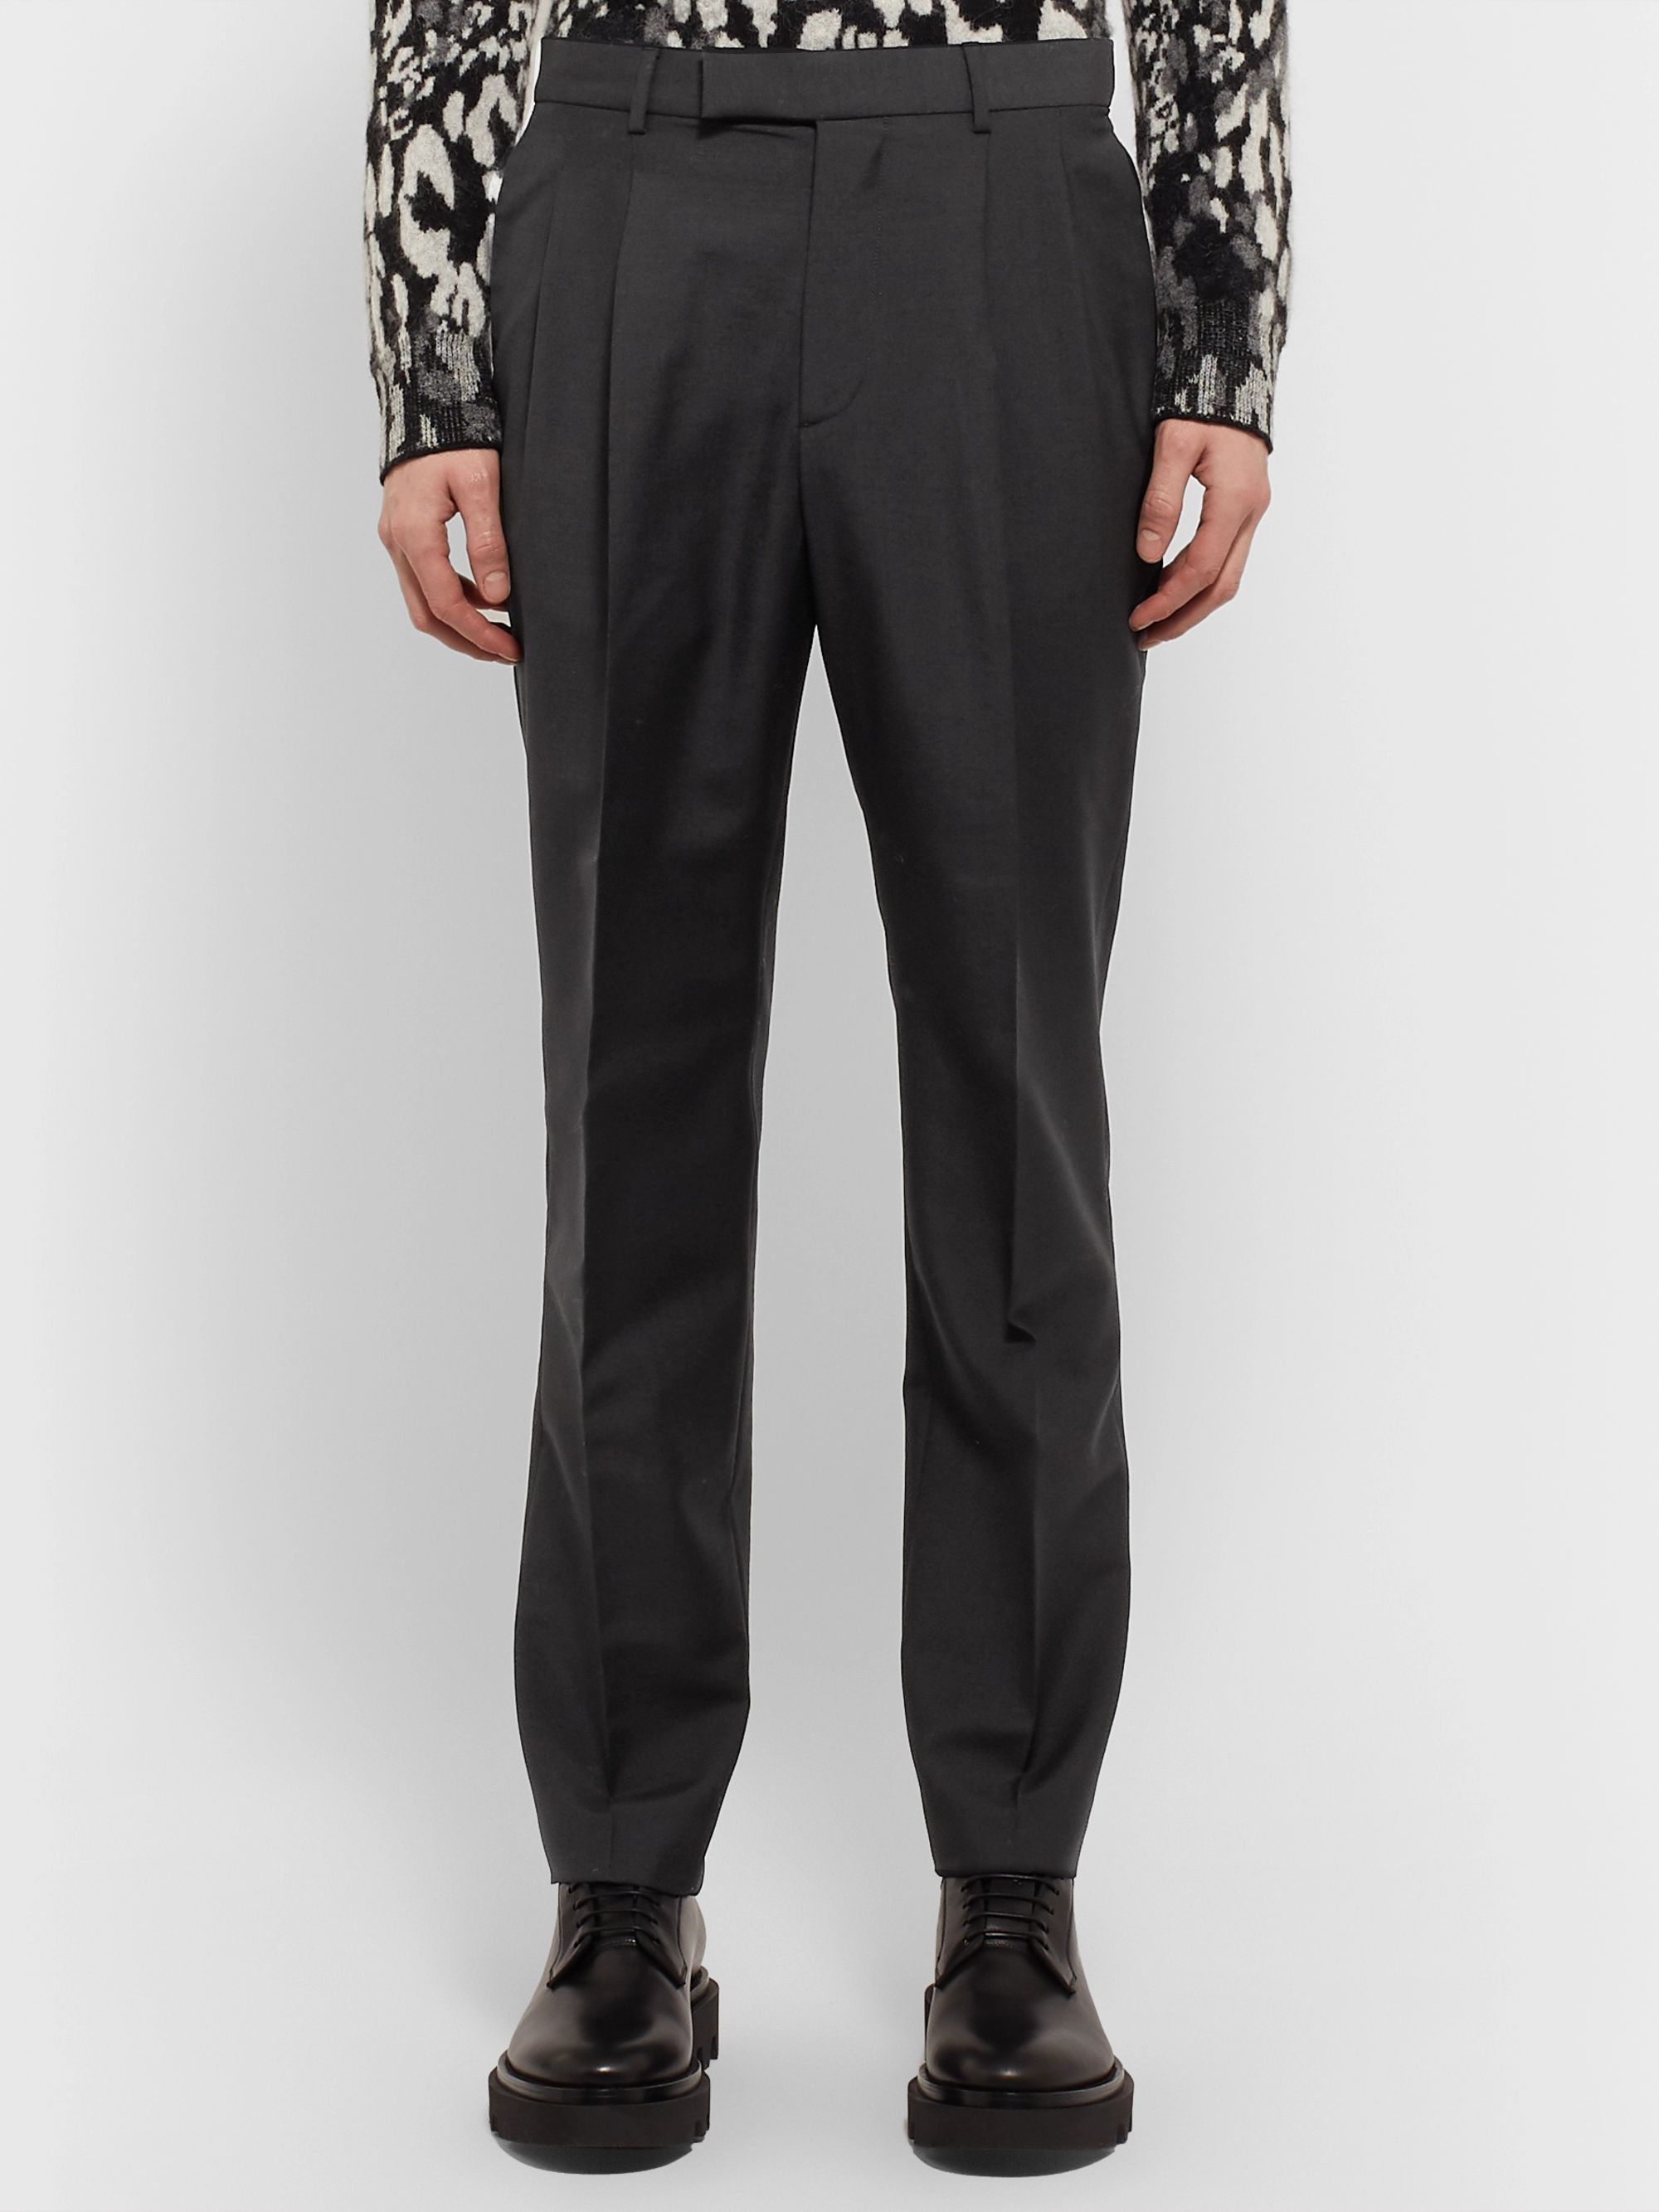 Alexander McQueen Black Slim-Fit Pleated Wool and Mohair-Blend Trousers